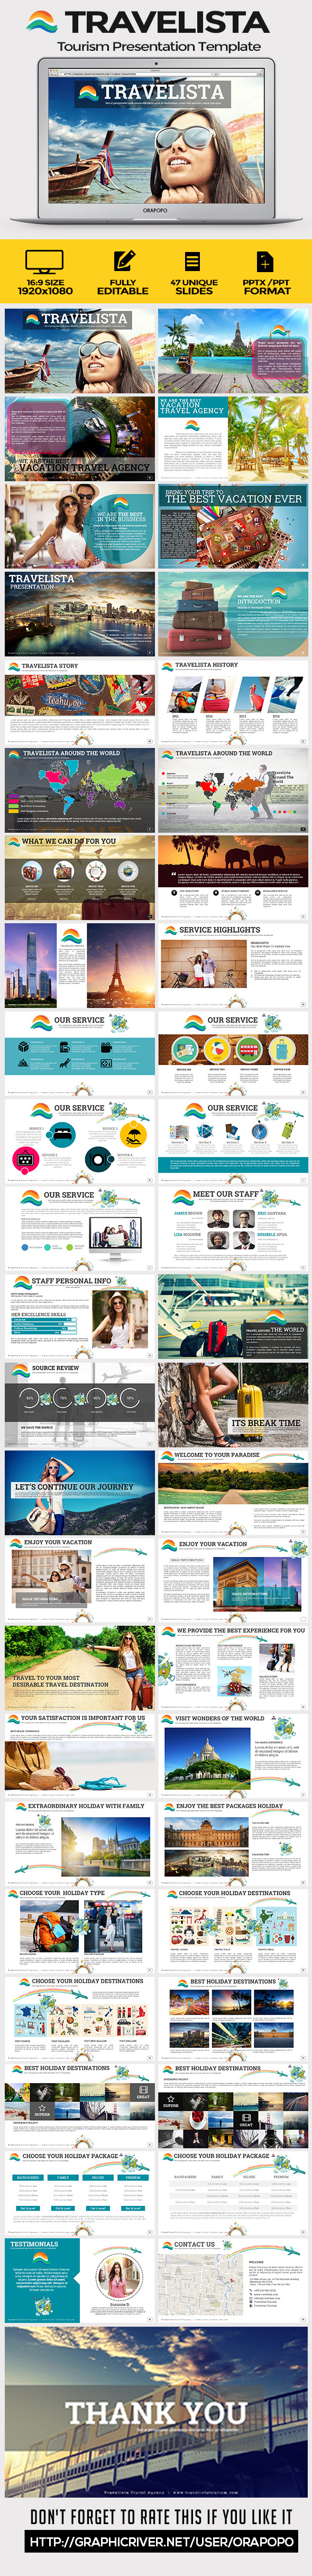 GraphicRiver Travelista Tourism Presentation Template 11130731